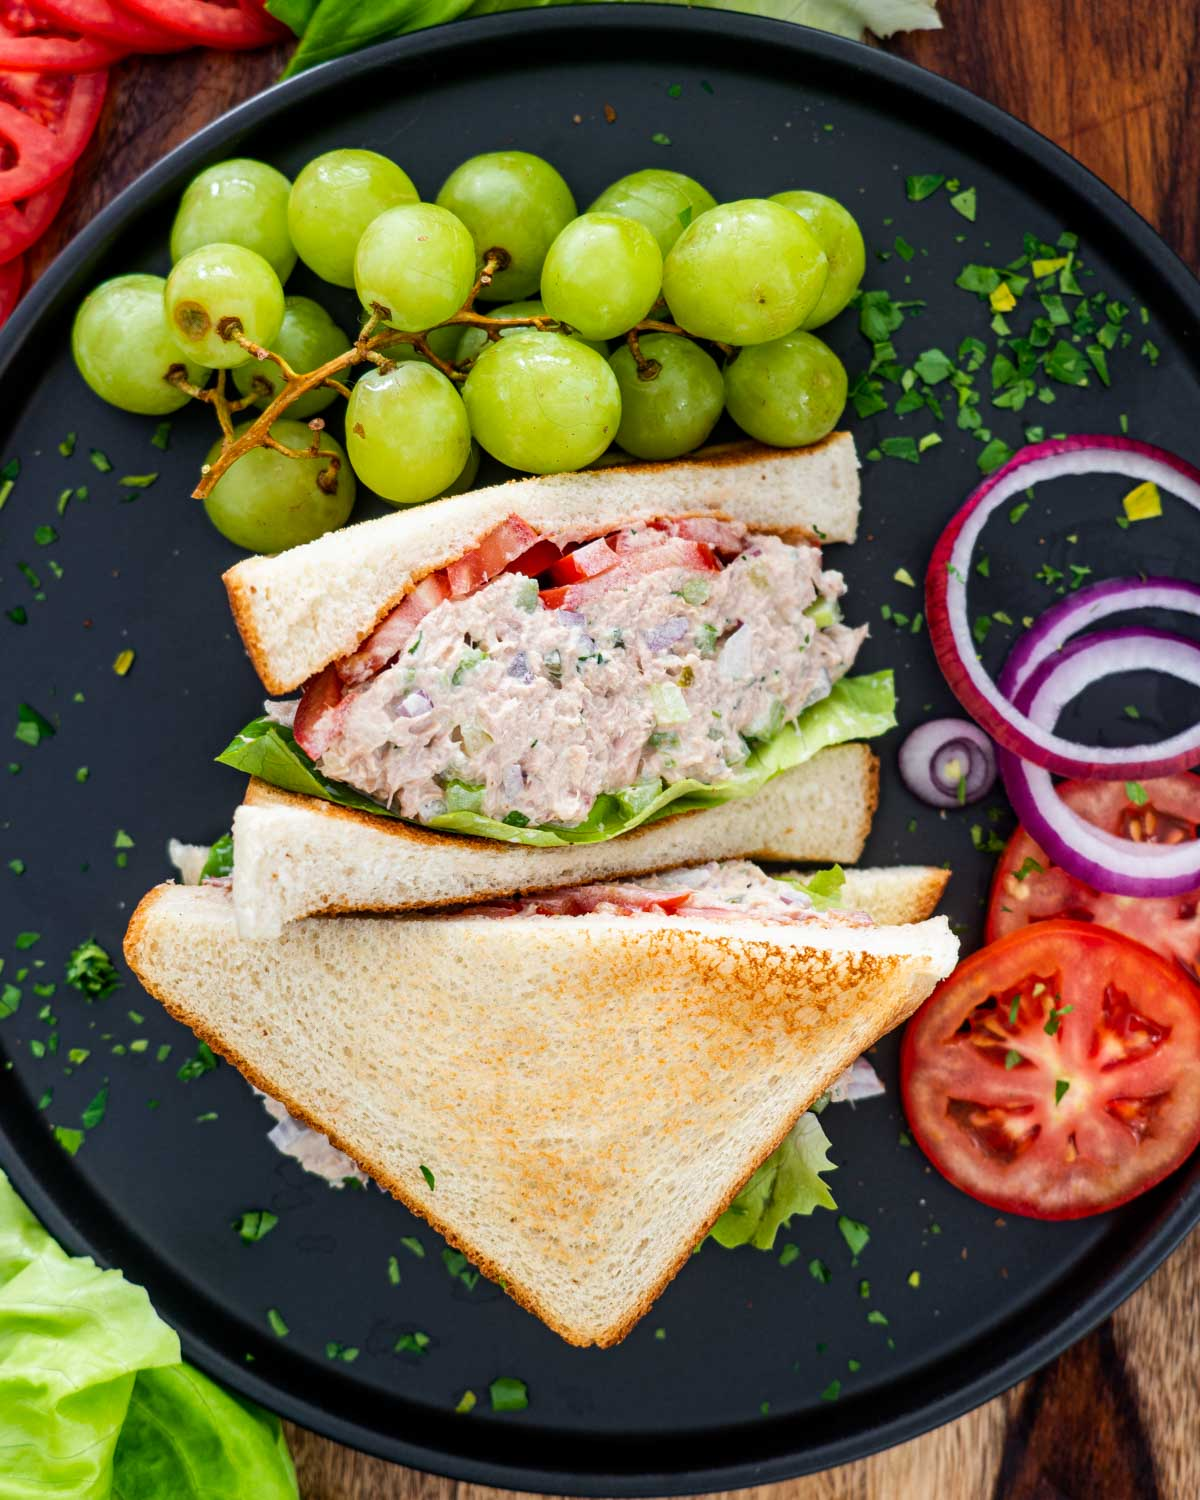 tuna salad sandwich with lettuce and tomatoes and grapes on the side on a black plate.